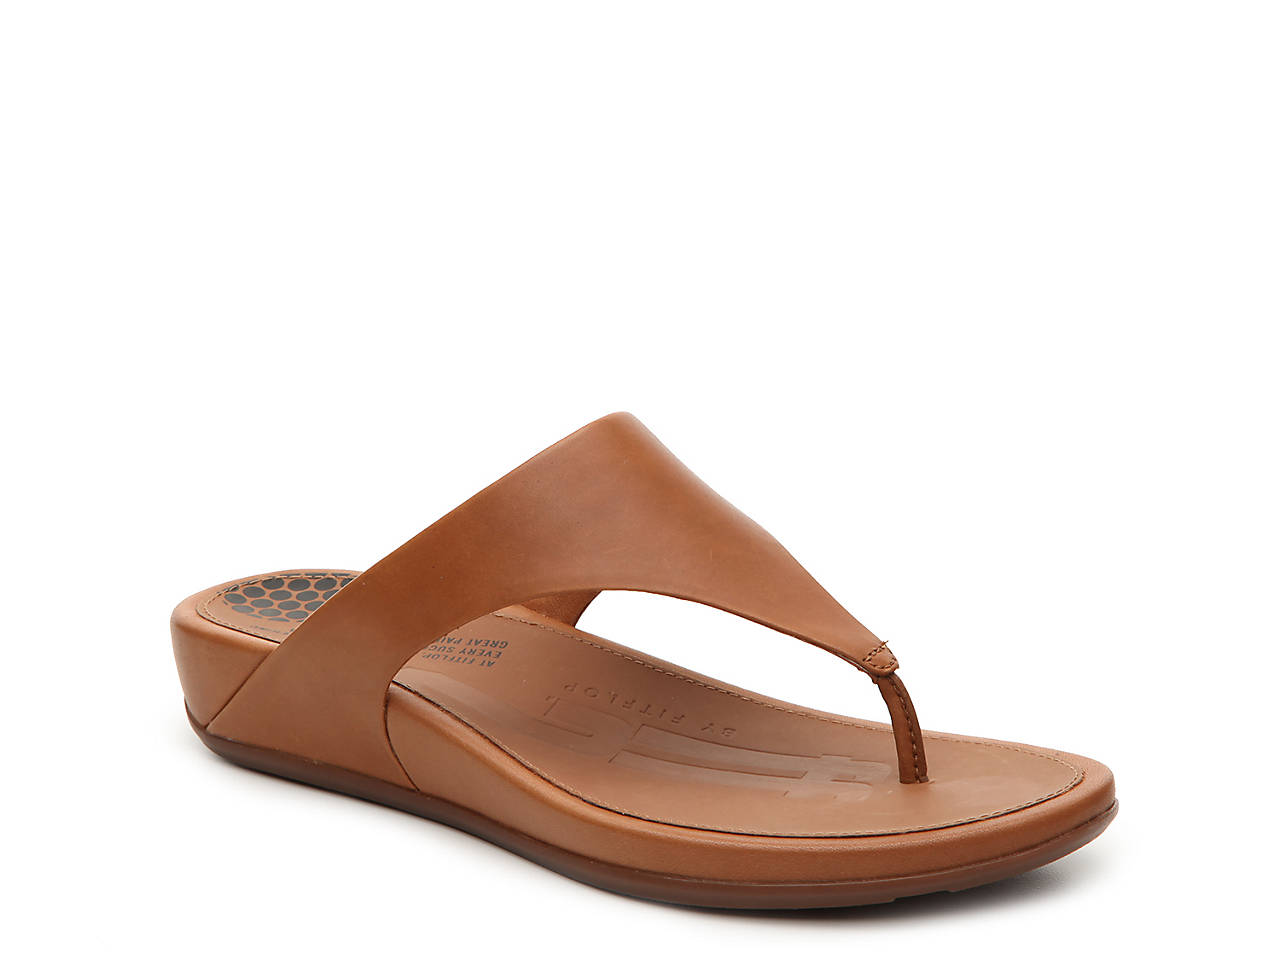 e8812f5d5a9 FitFlop Banda Wedge Sandal Women s Shoes